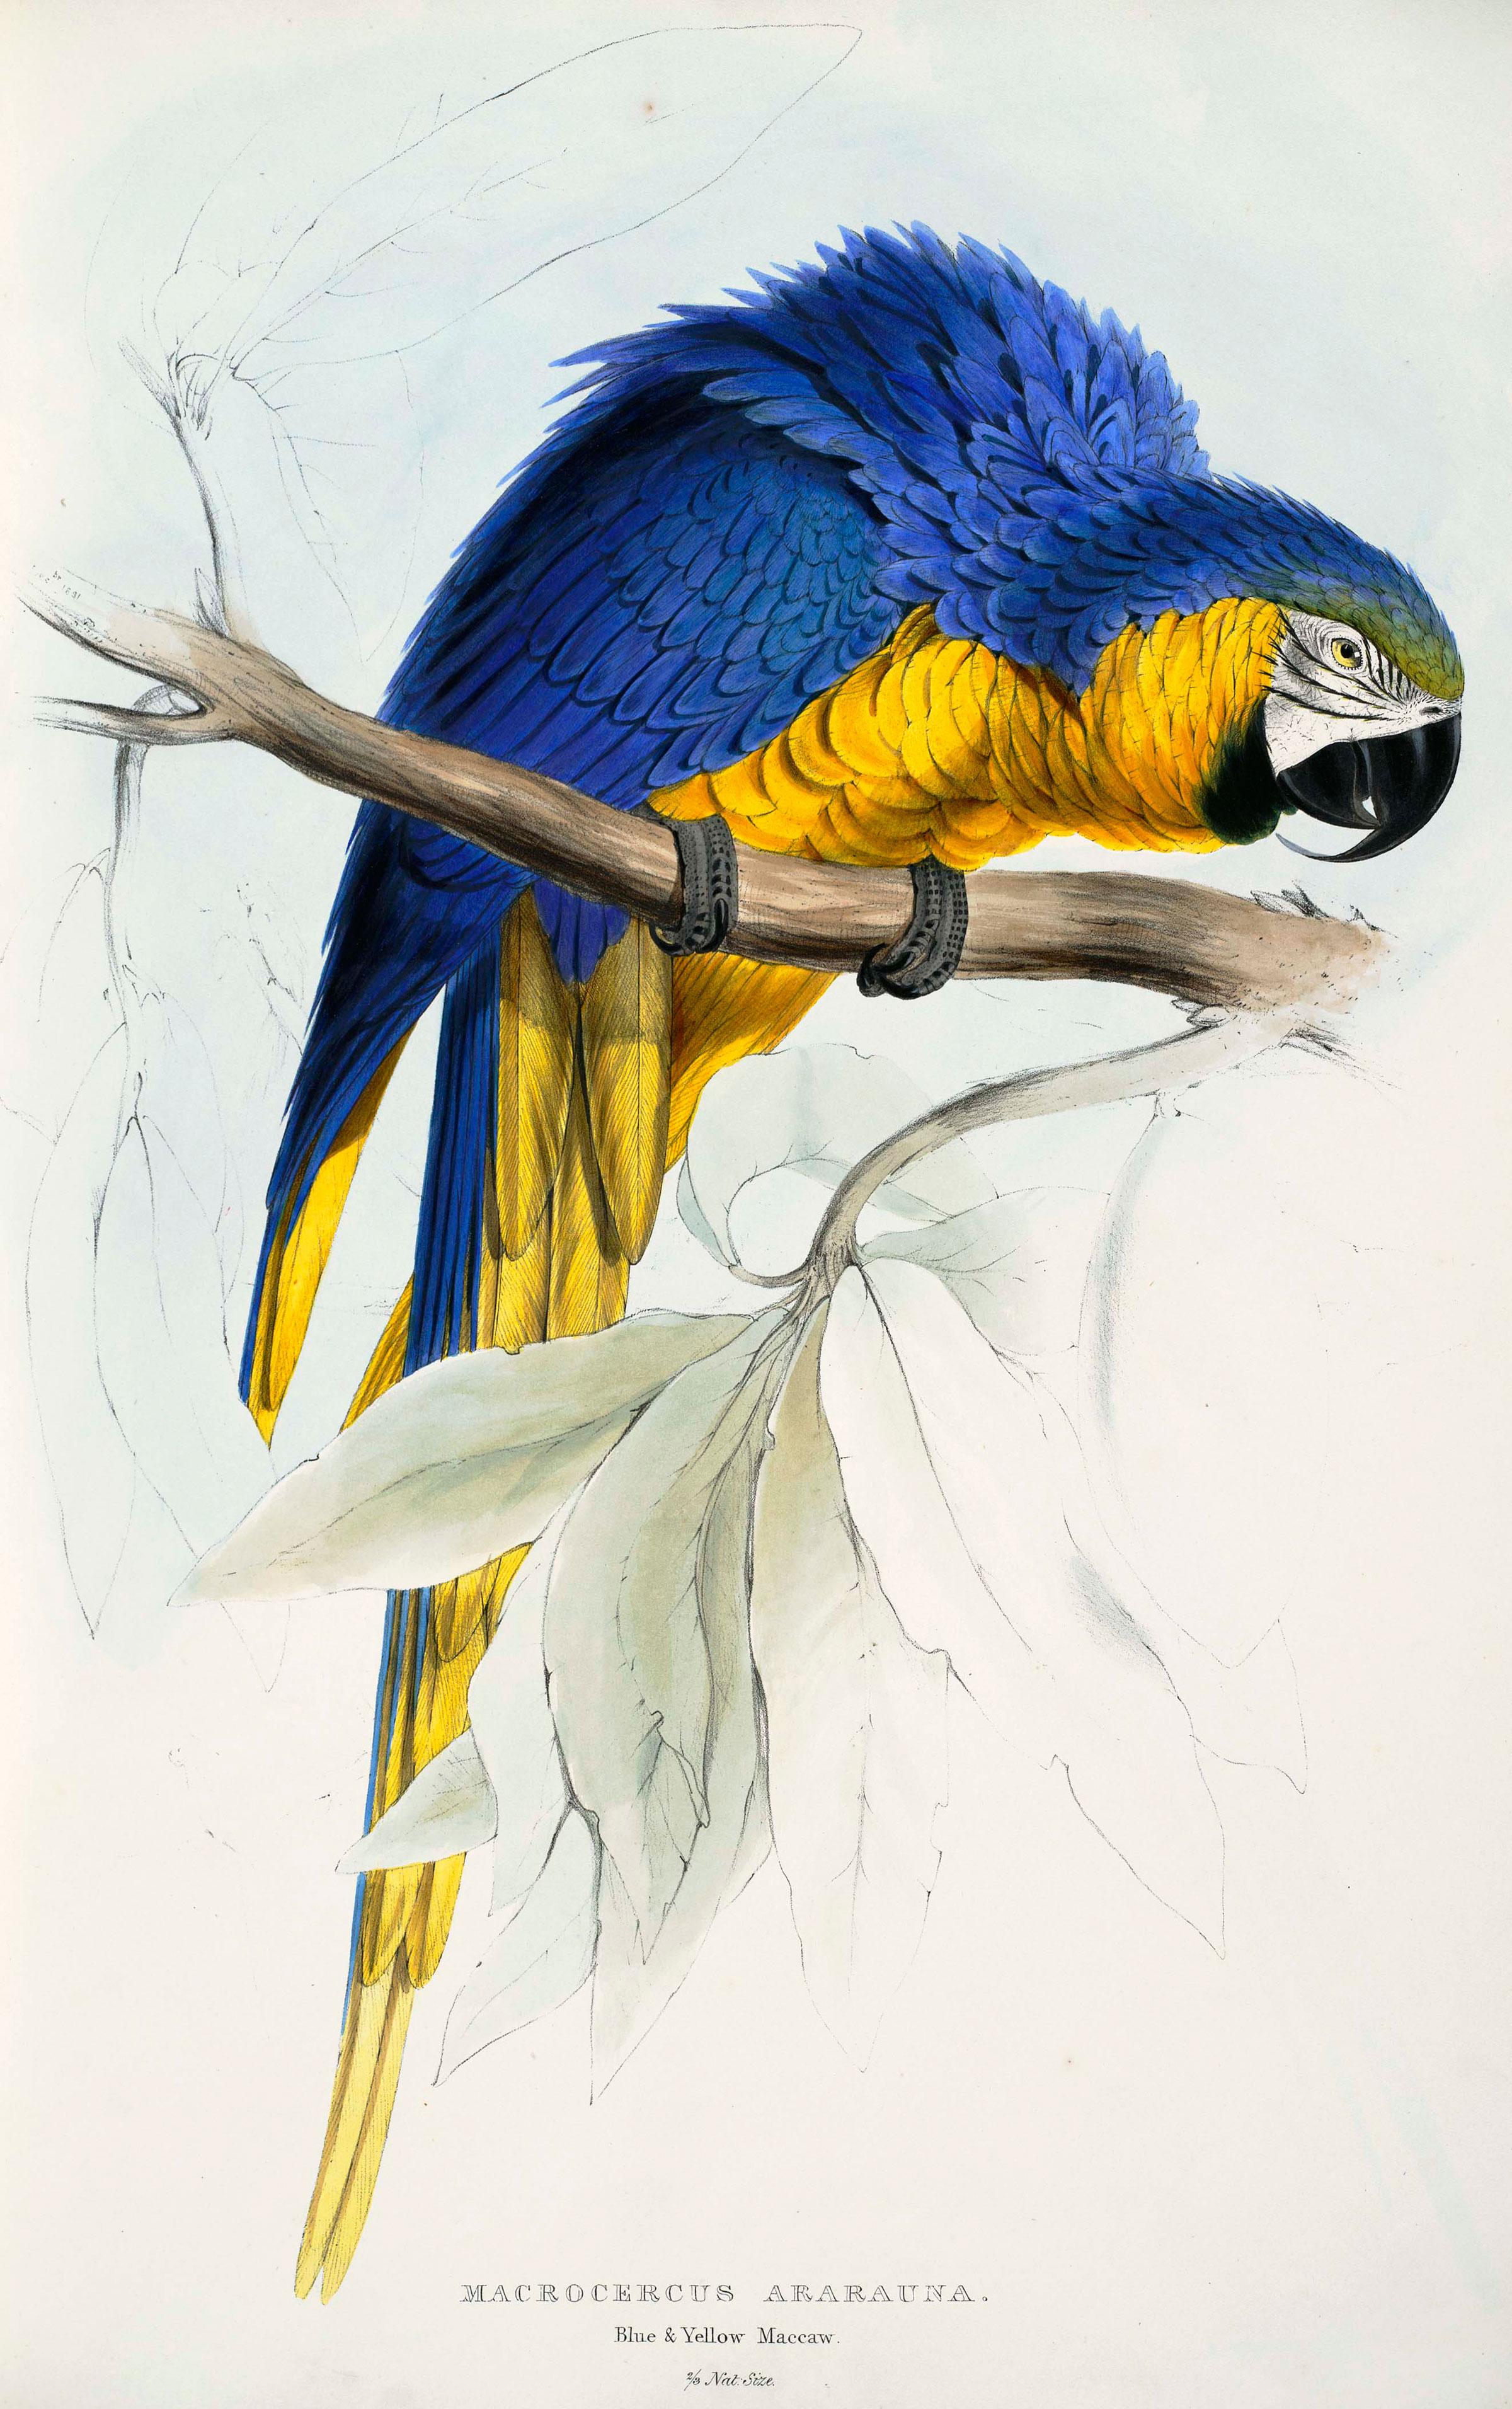 Blue and Yellow Maccaw [sic], from Illustrations of the Family of Psittacidae, or Parrots. Illustration: Edward Lear